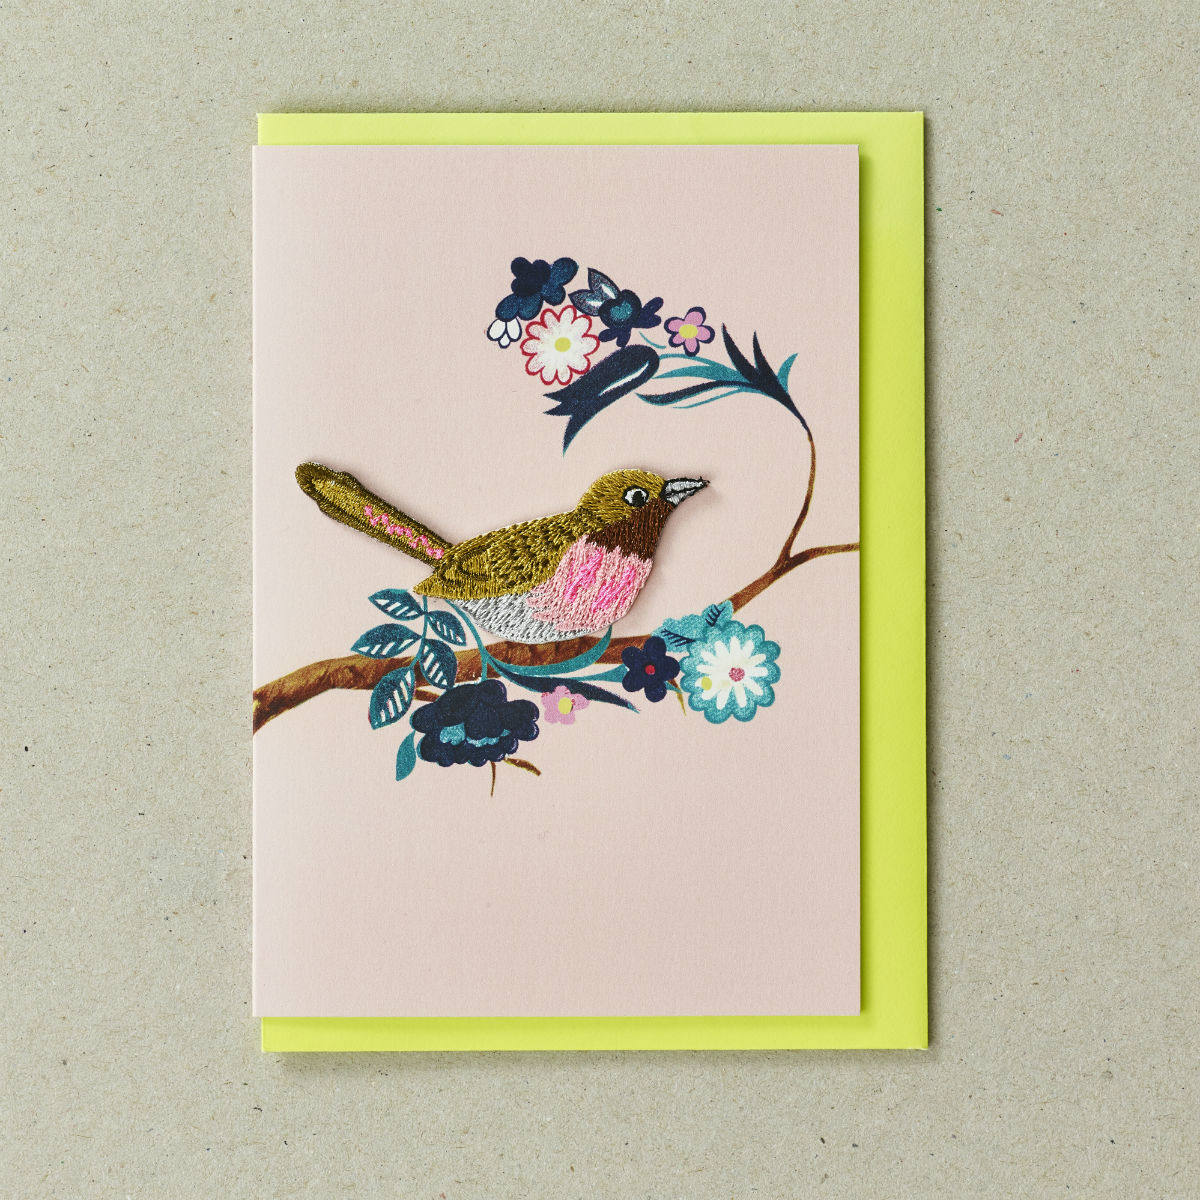 Embroidered Bird Greeting Card by Petra Boase   Restoration Yard